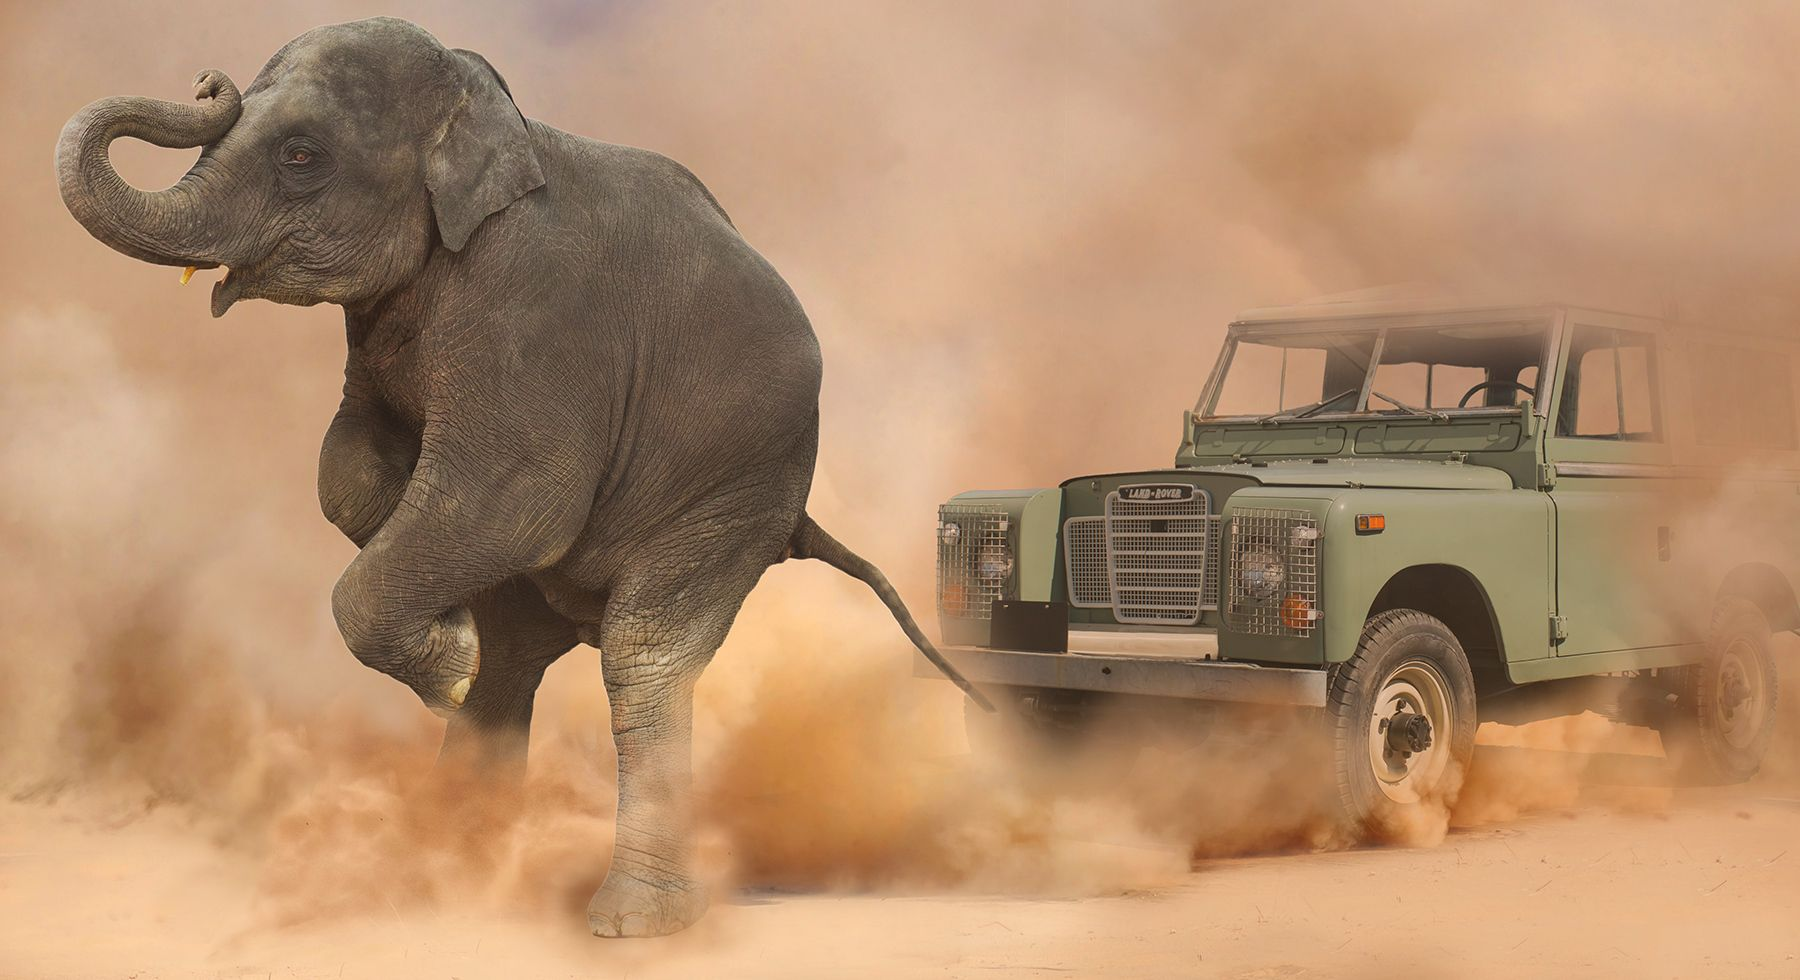 1elephant____old_rover__.jpg